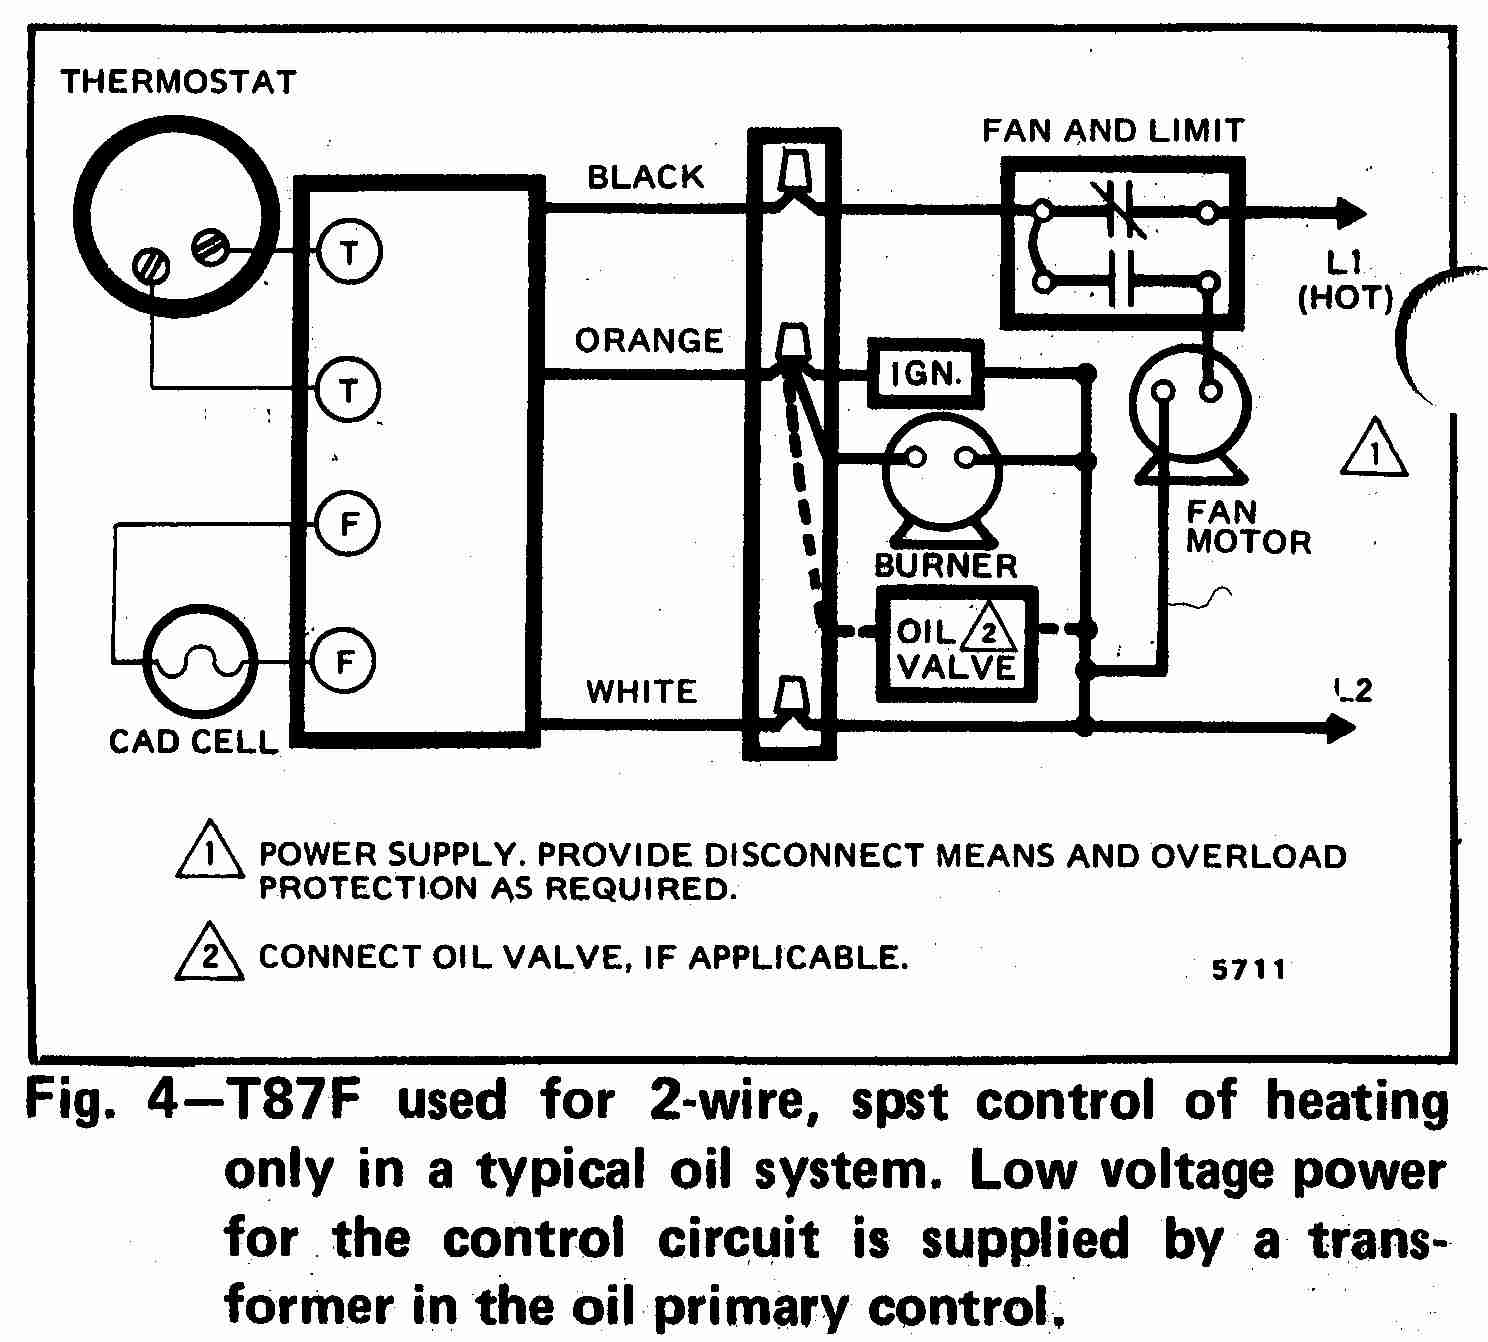 TT_T87F_0002_2W_DJF room thermostat wiring diagrams for hvac systems wiring diagram for dummies at couponss.co